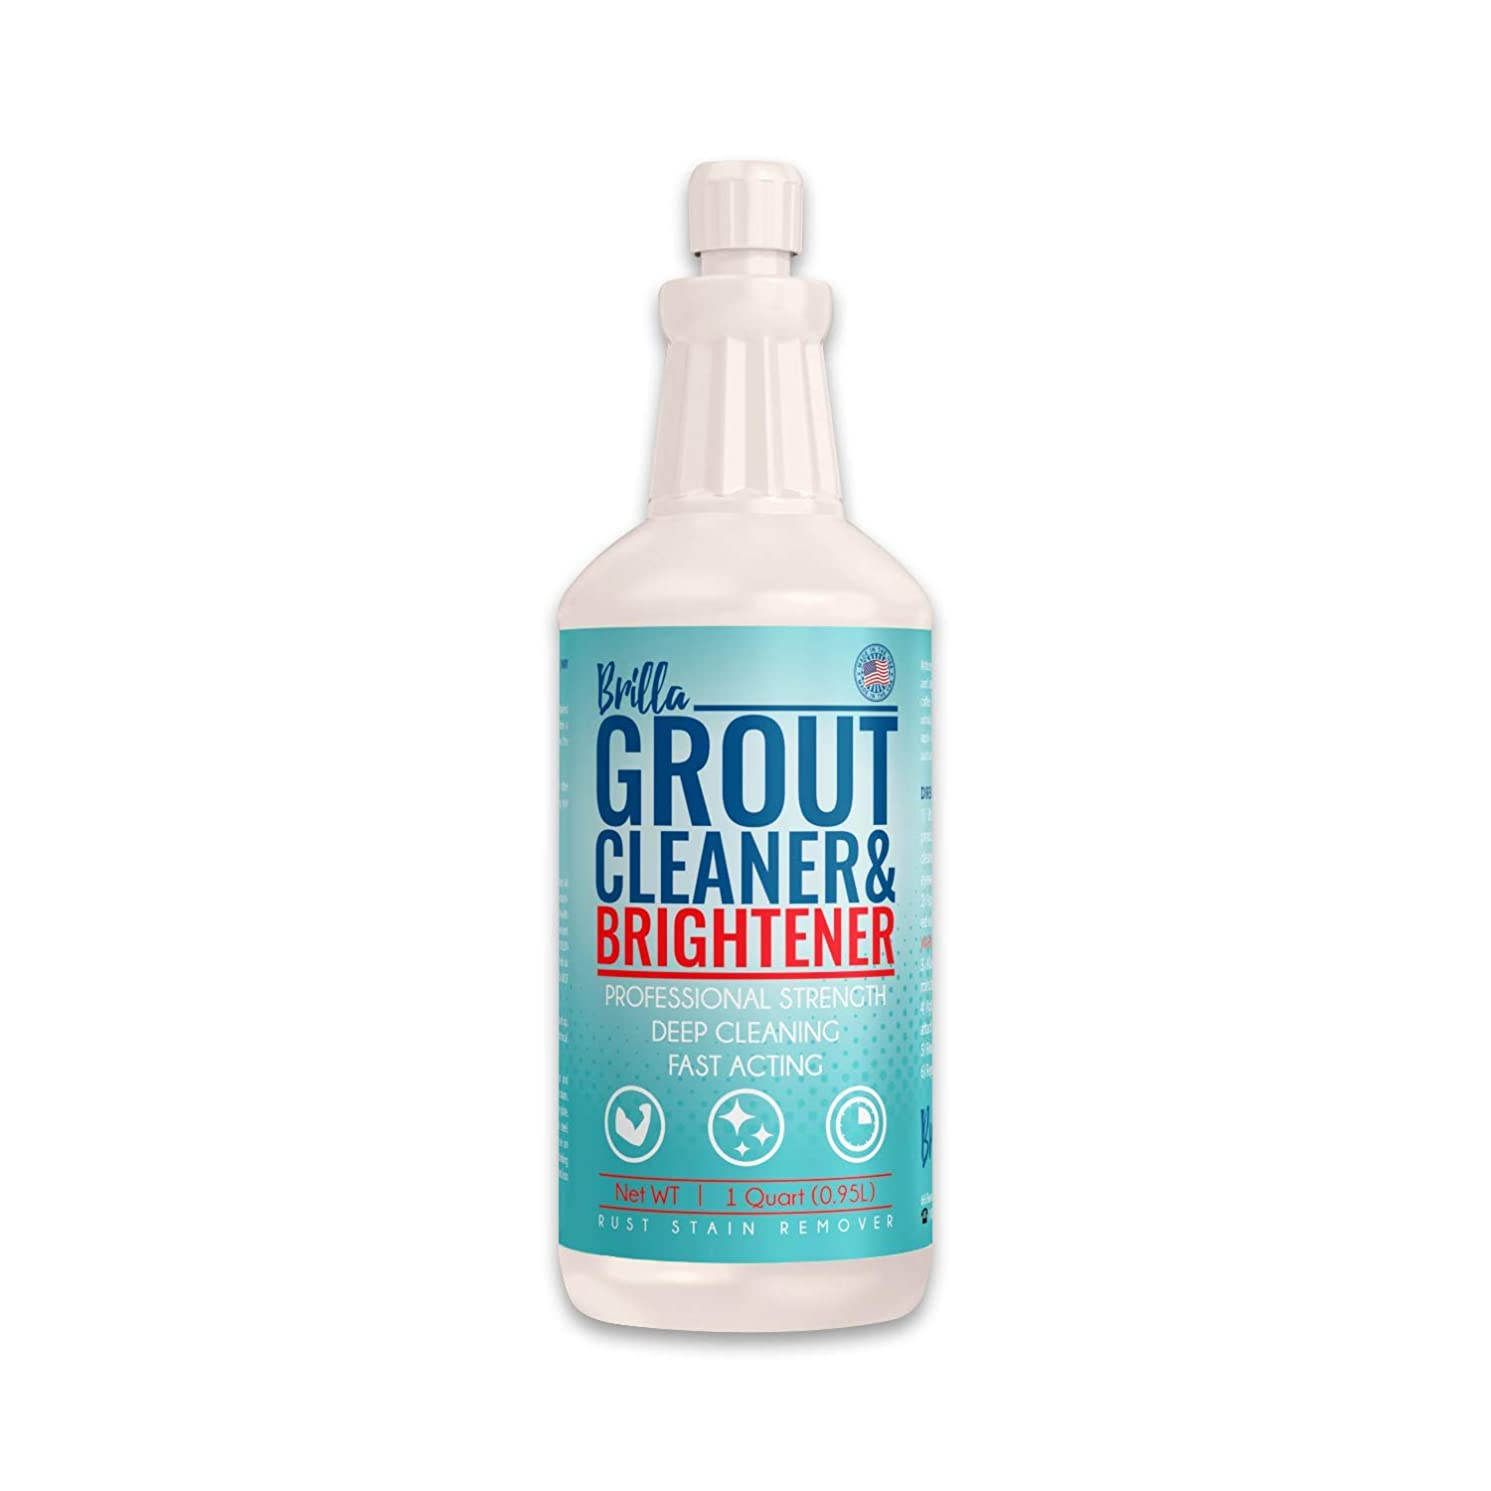 Grout Cleaner and Brightener: Deep Cleans Bathroom and Kitchen Tile Grout on Walls and Floor : 1 Quart Bottle